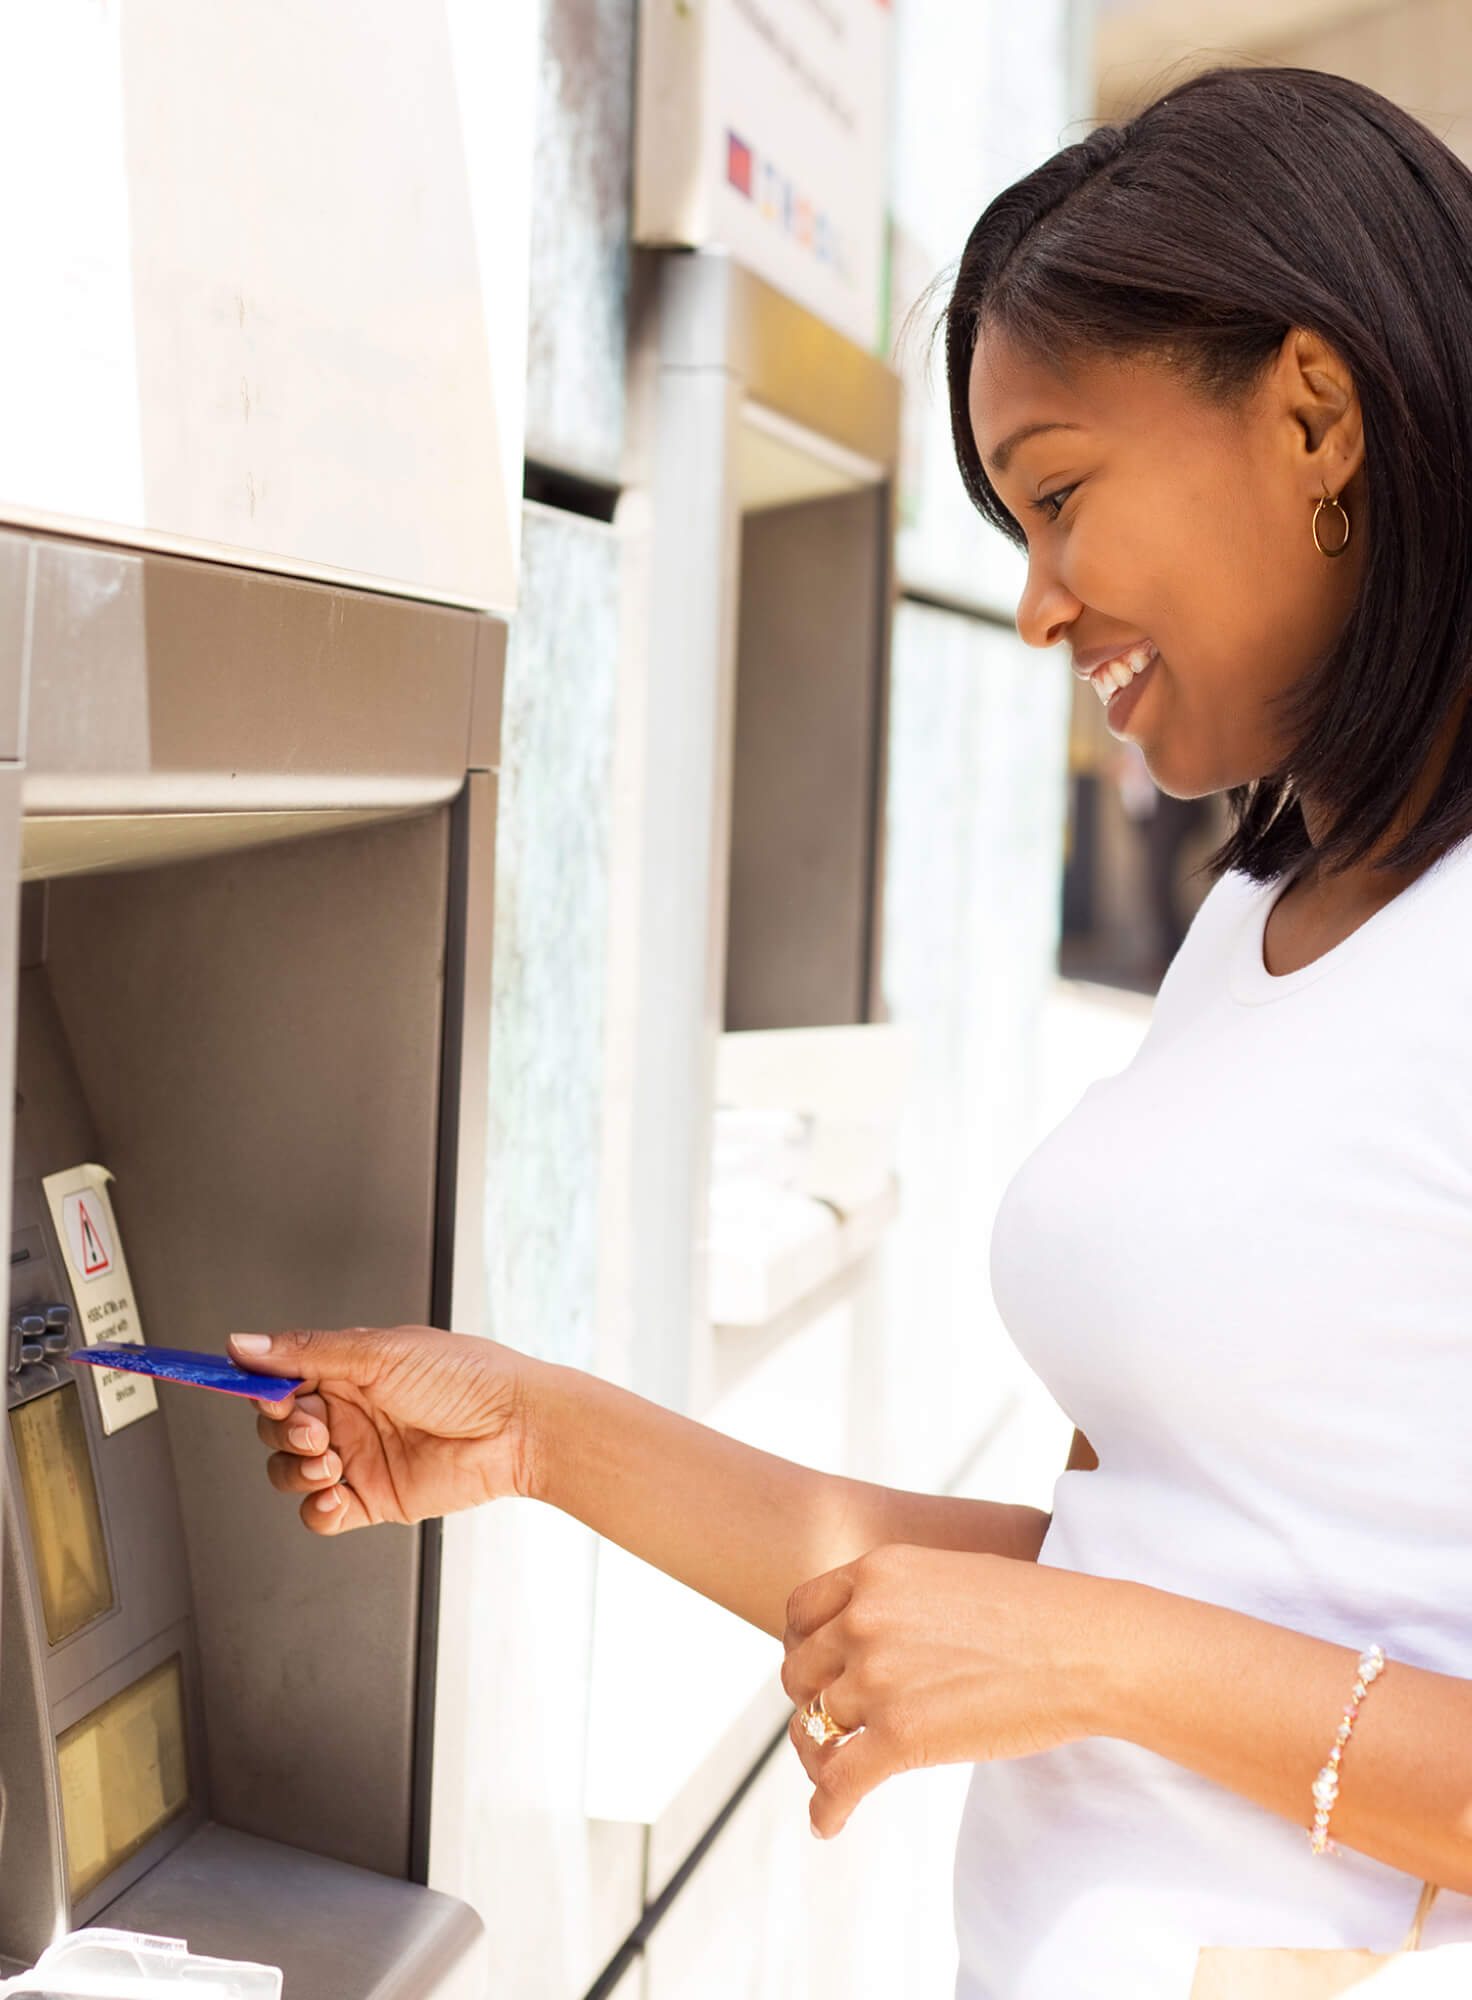 Deploying a network of ATMs across Ghana